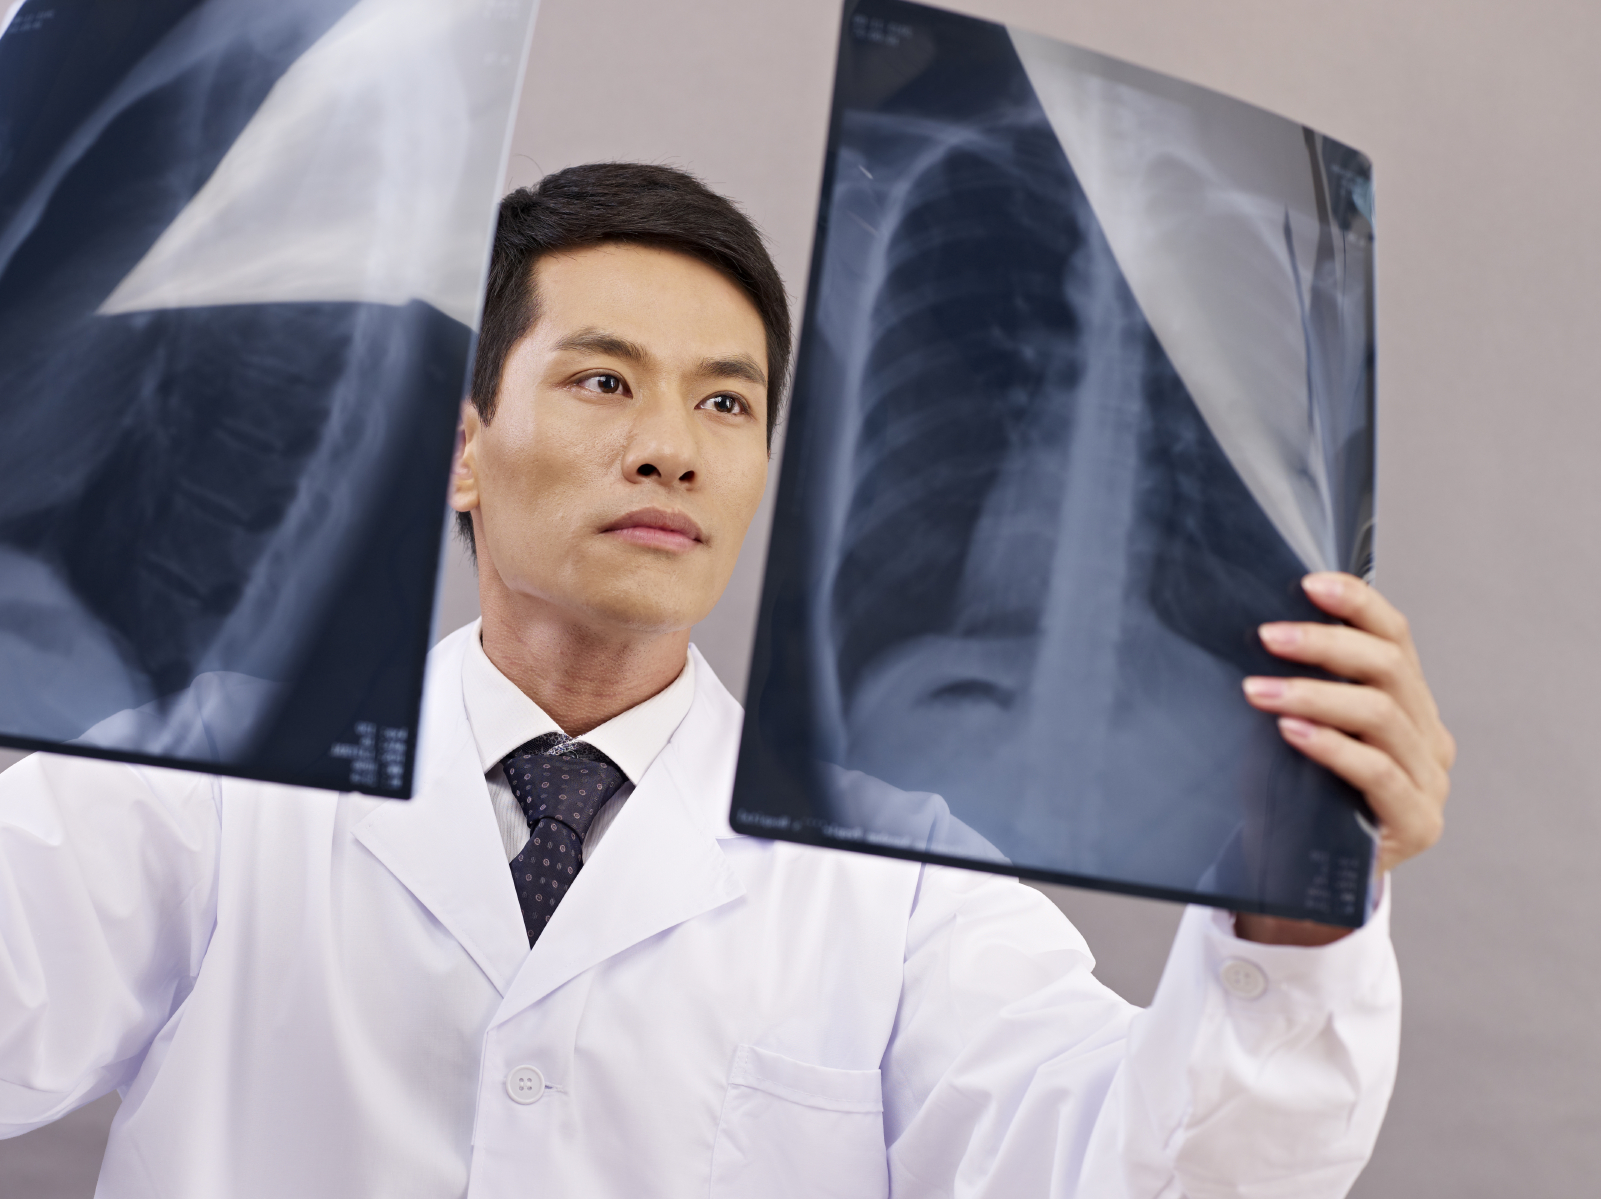 A cancer doctor looking at x-rays looking for signs of cancer